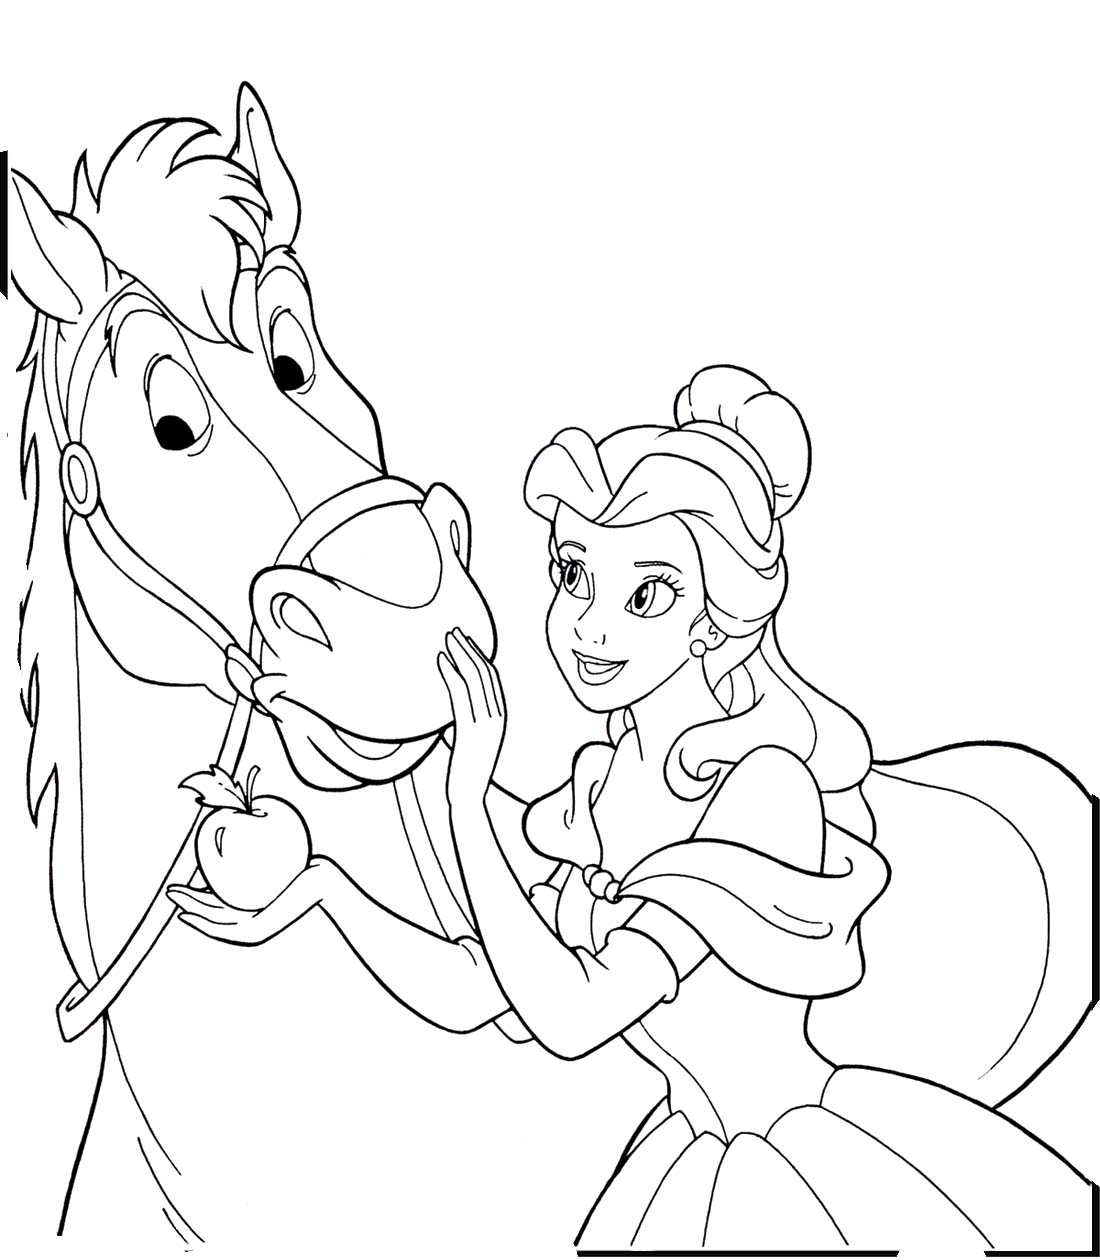 30 Printable Horse Coloring Pages